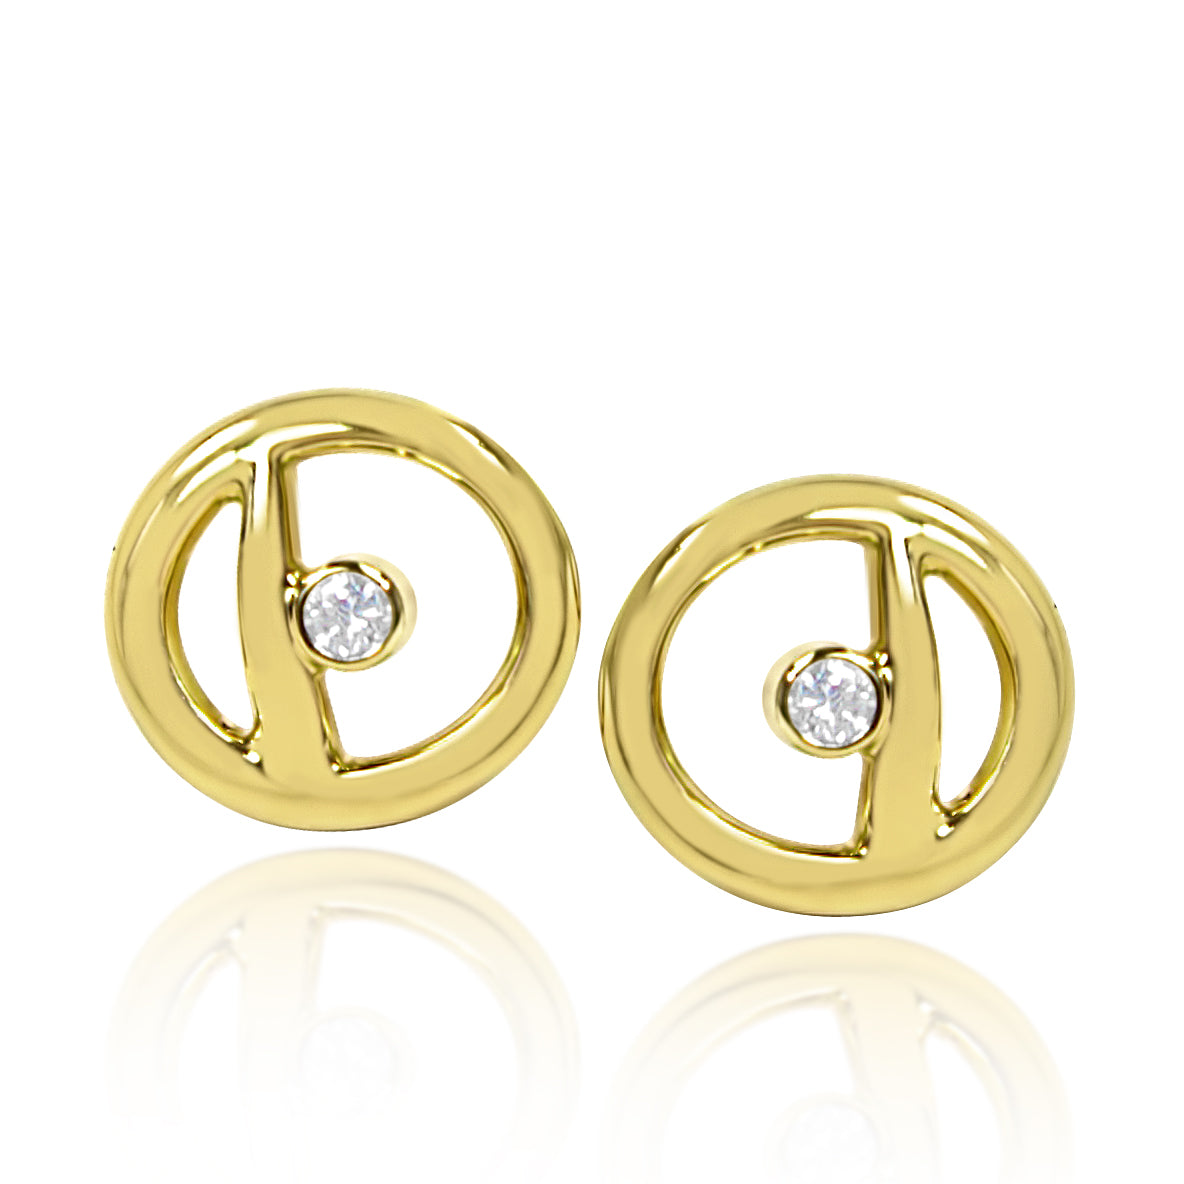 Curve Frame Earrings: 18ct Yellow Gold & Diamonds